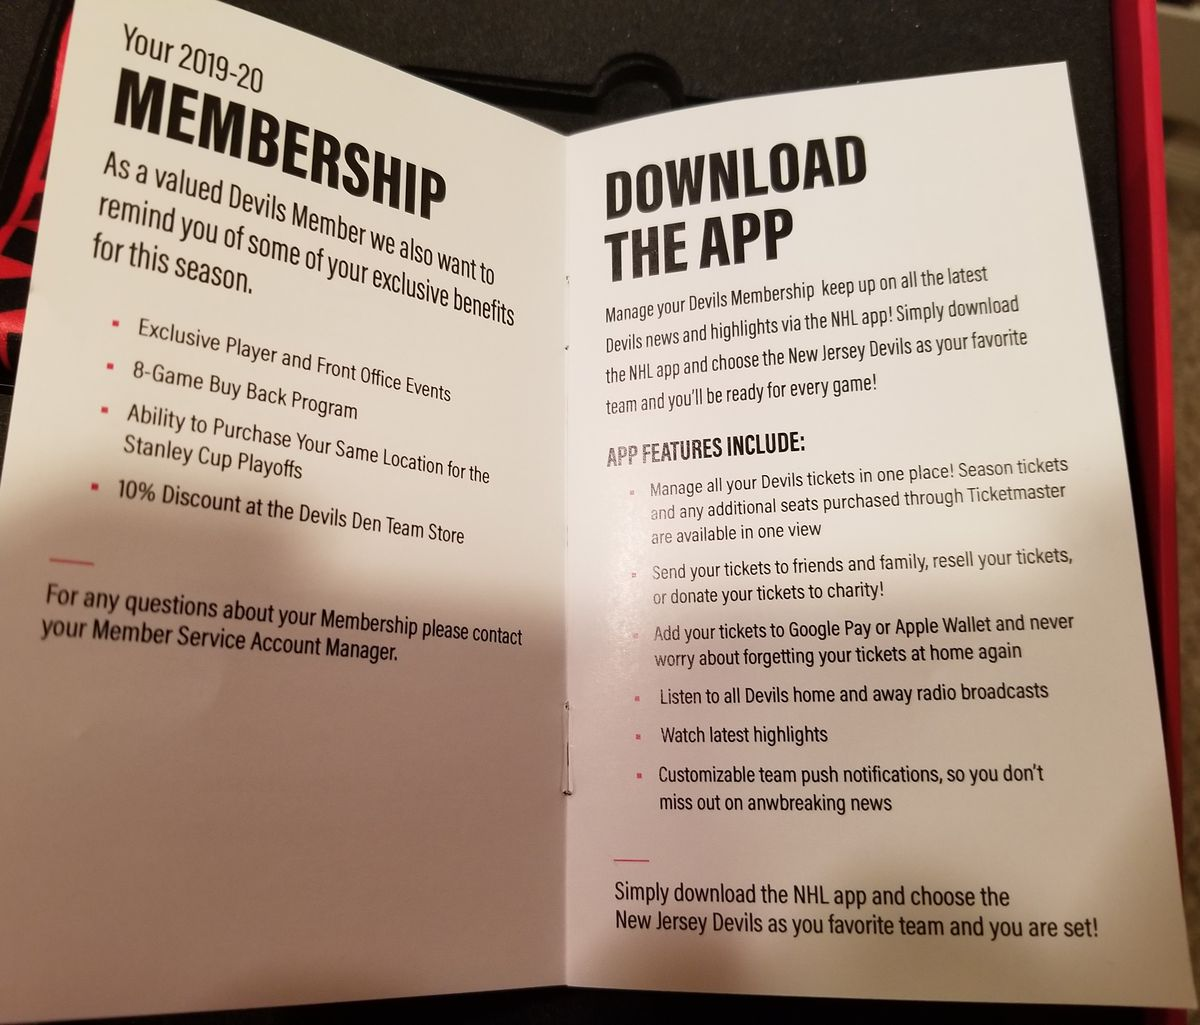 The first two pages of the Membership Guide